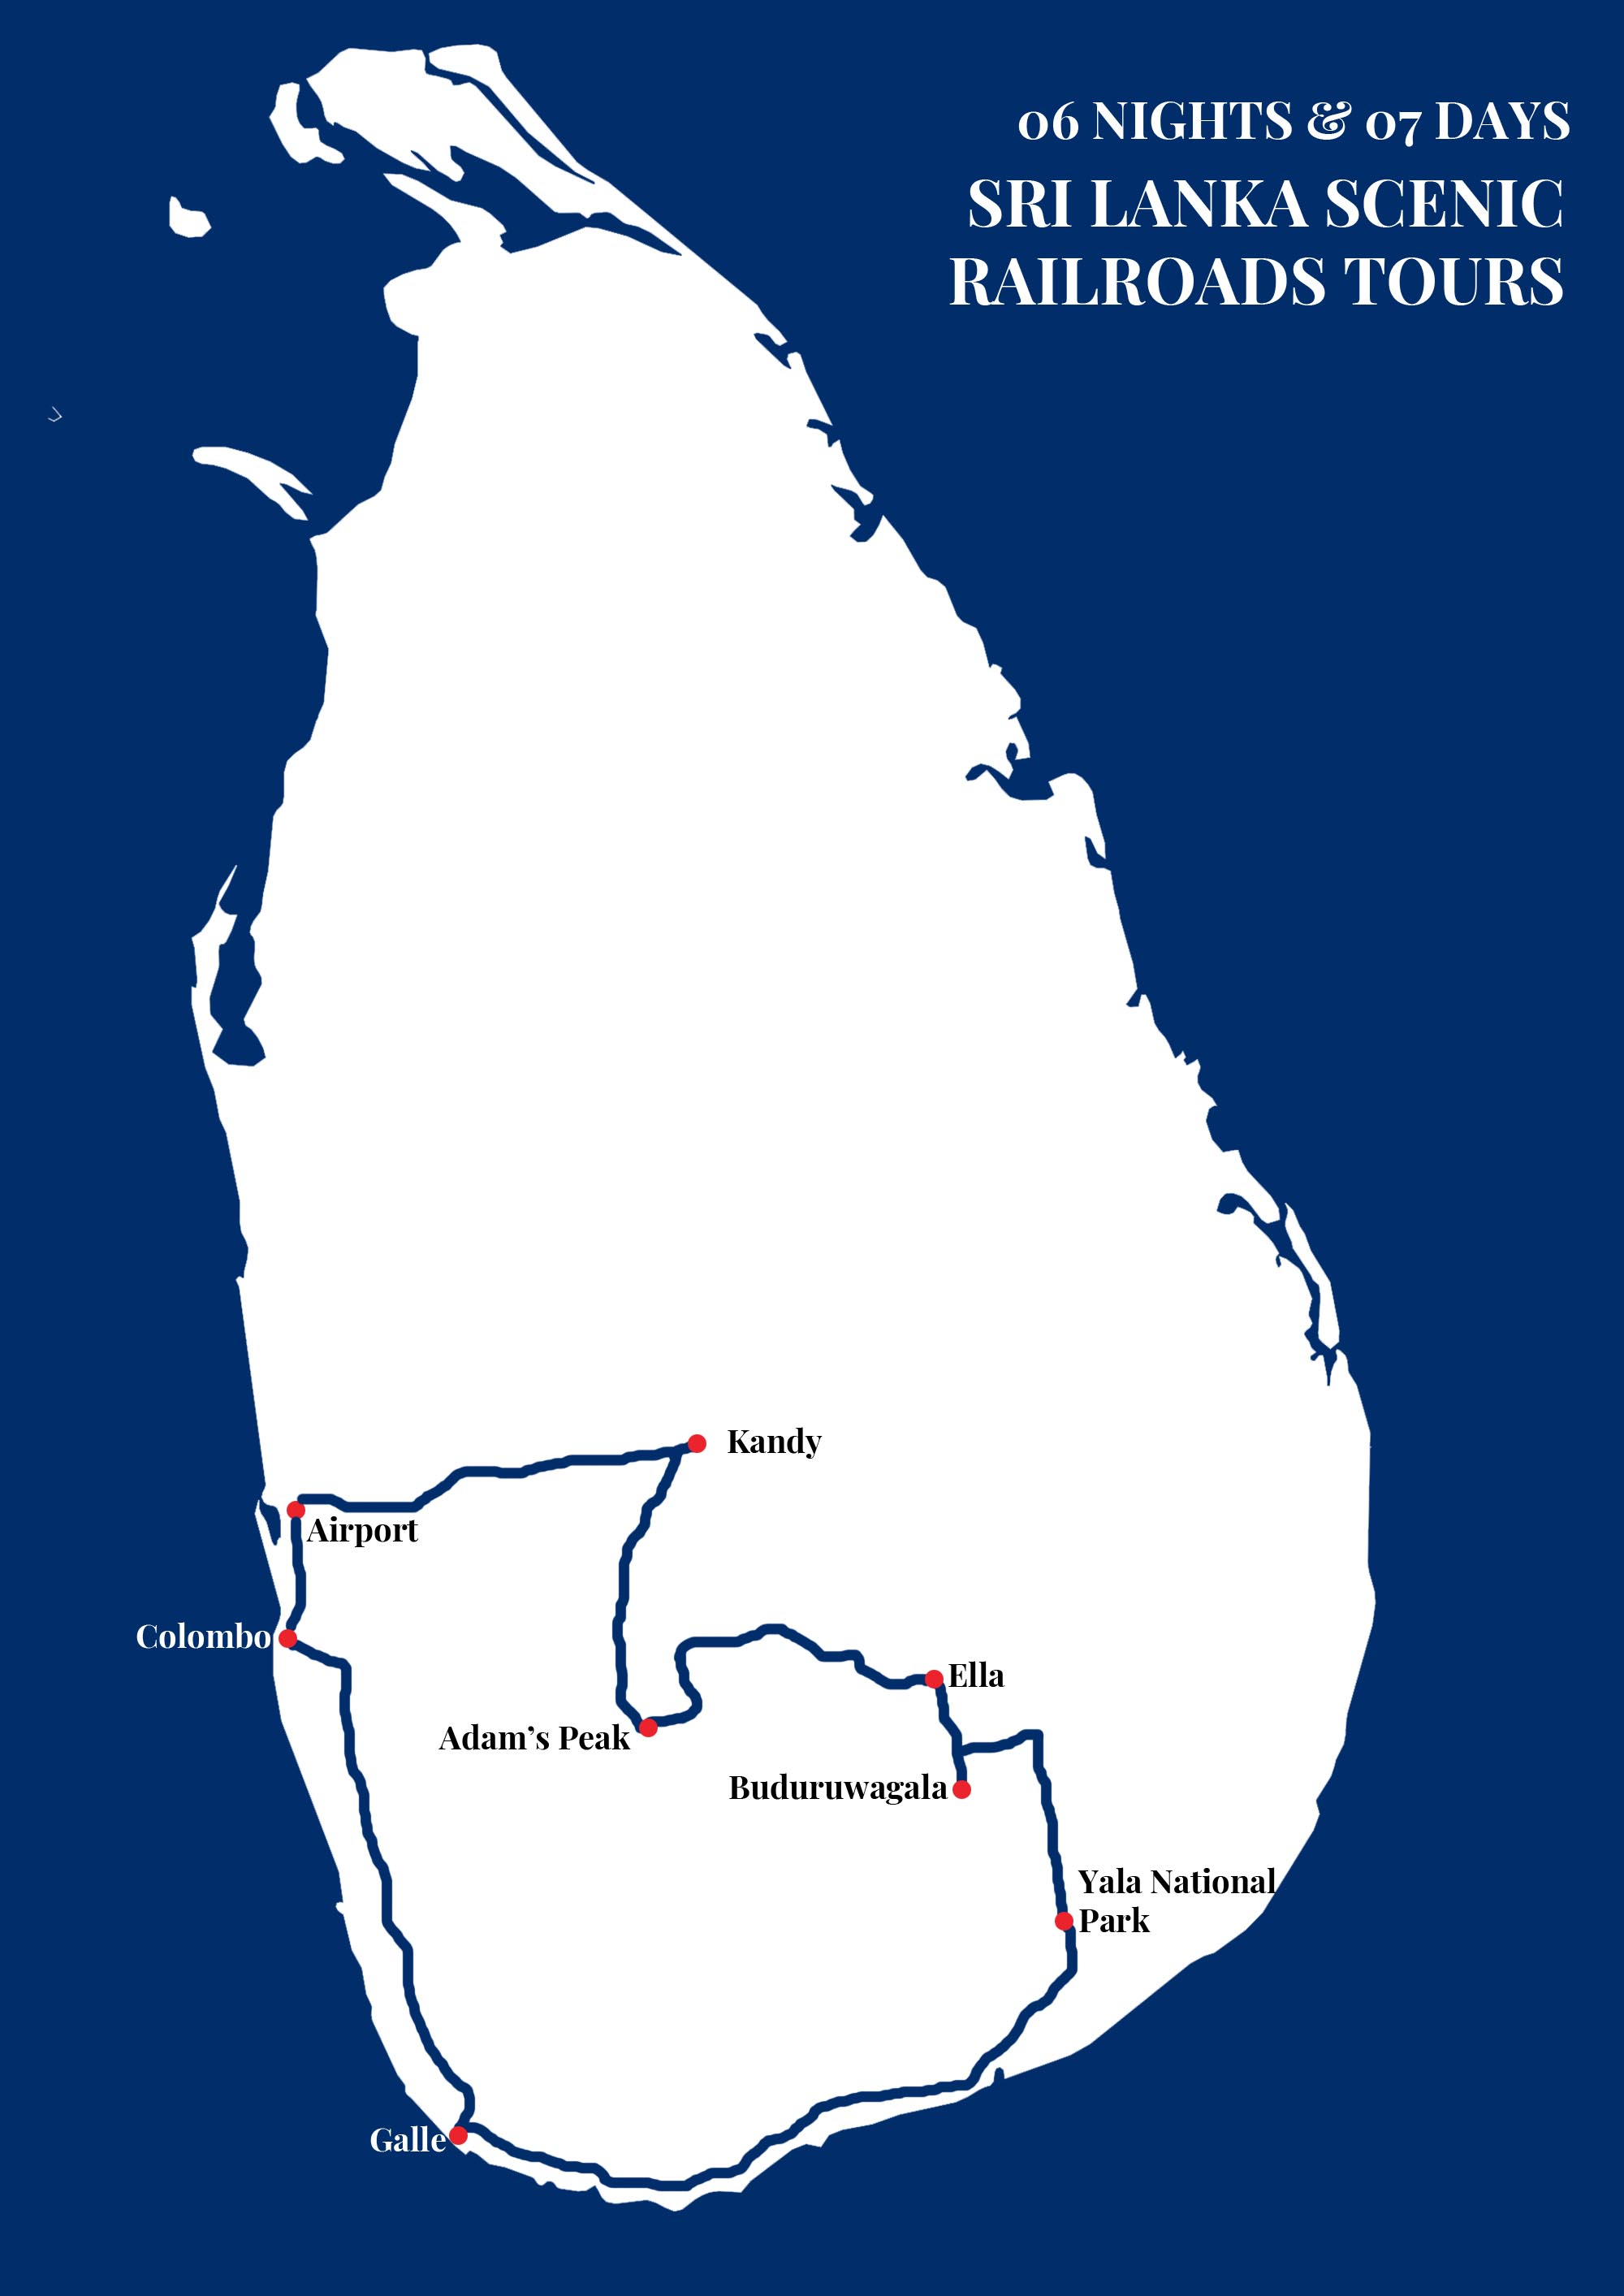 SRI LANKA SCENIC RAILROADS TOURS map